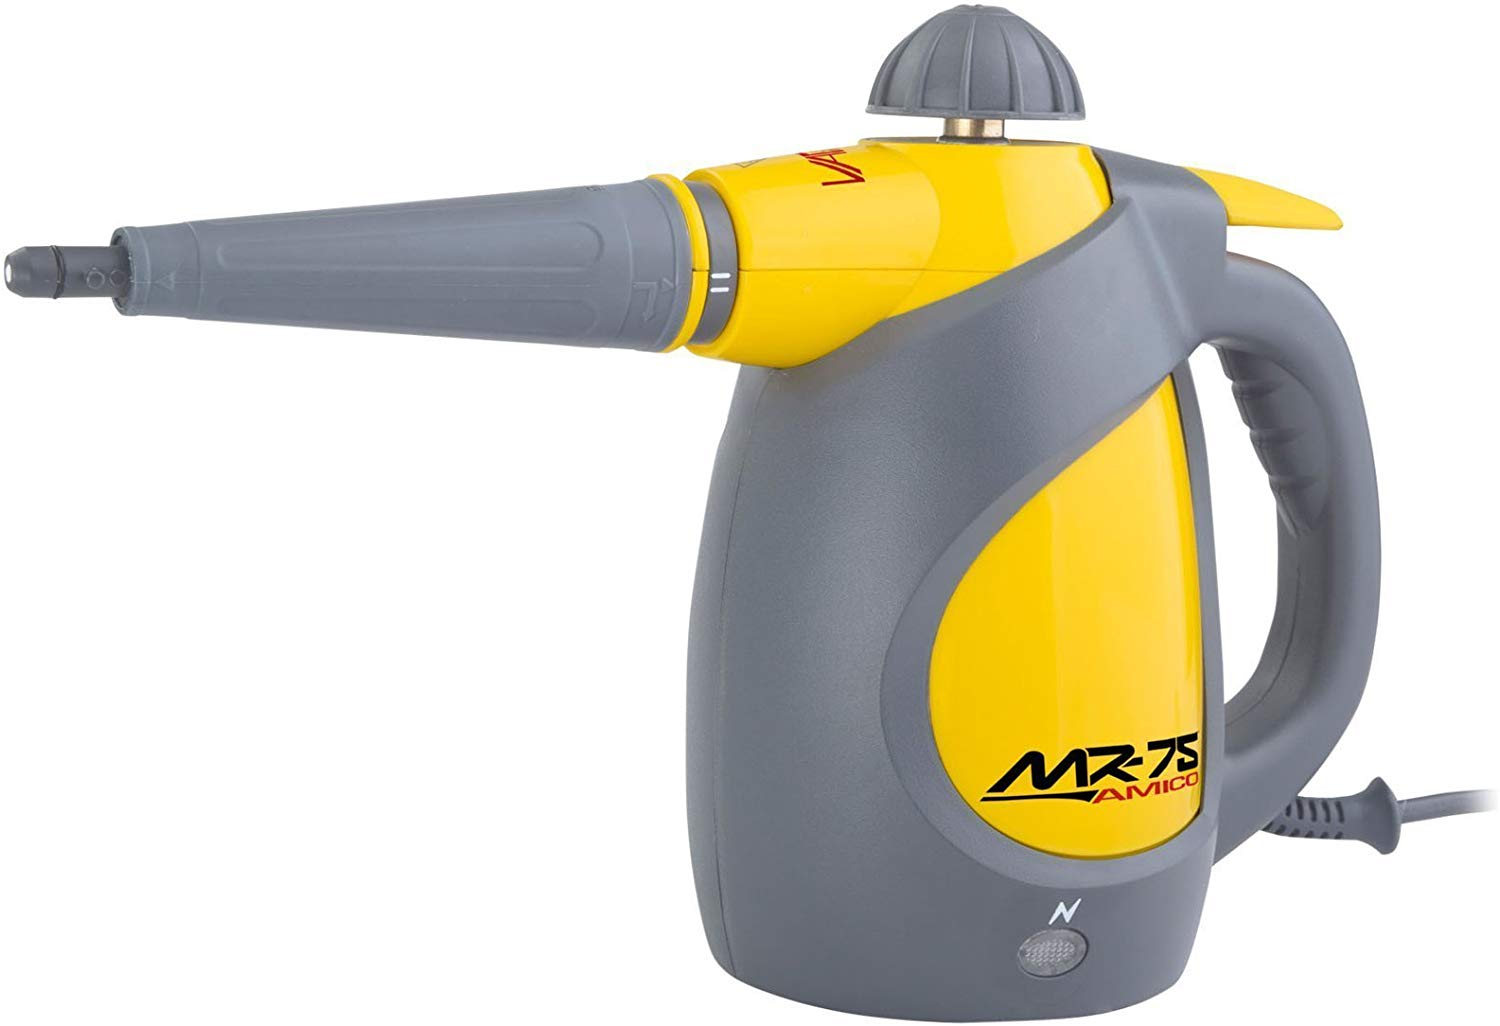 Load image into Gallery viewer, MR-75 Amico Handheld Steam Cleaner